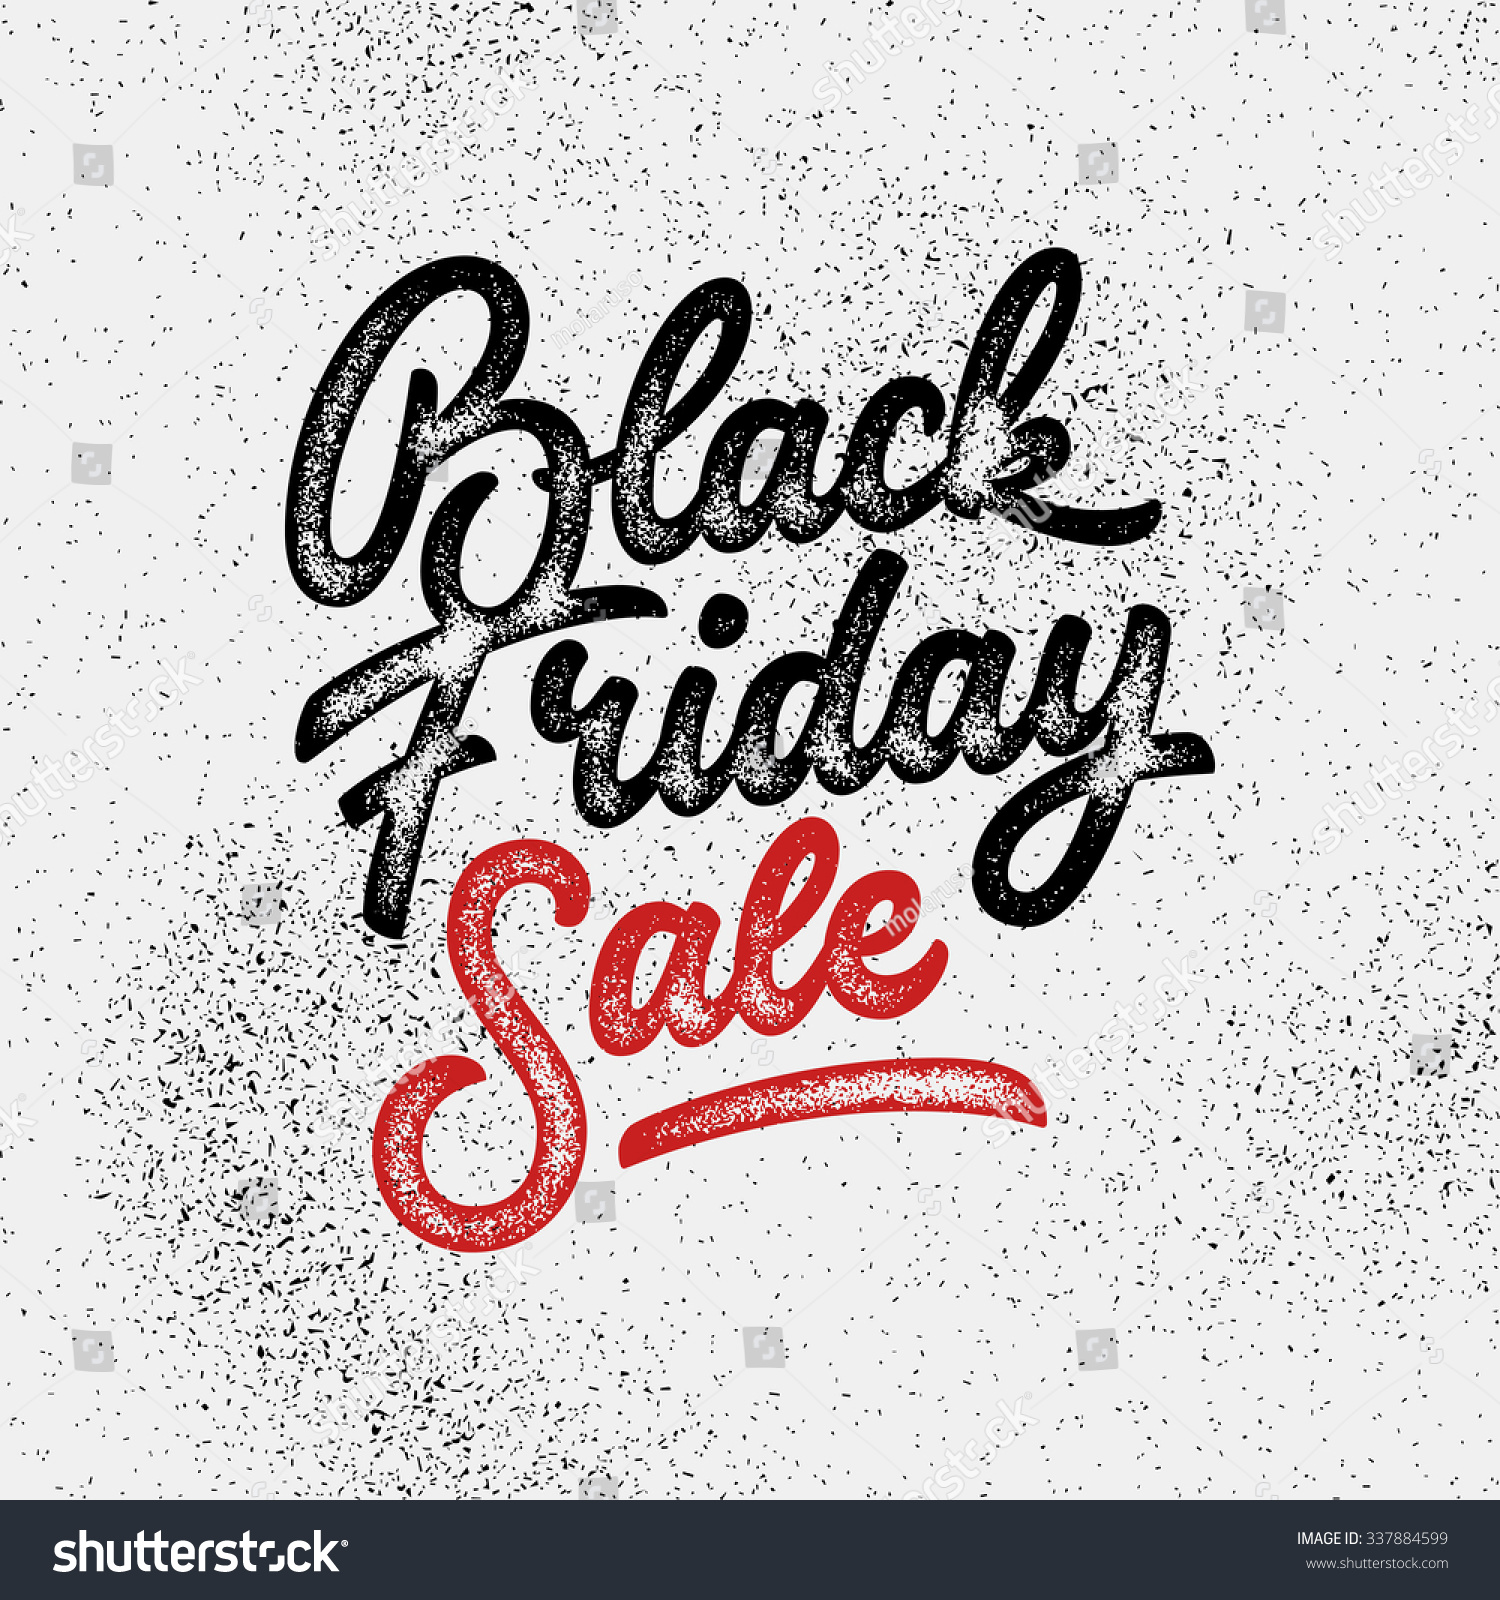 Black Friday Sale Handmade Lettering Calligraphy Stock